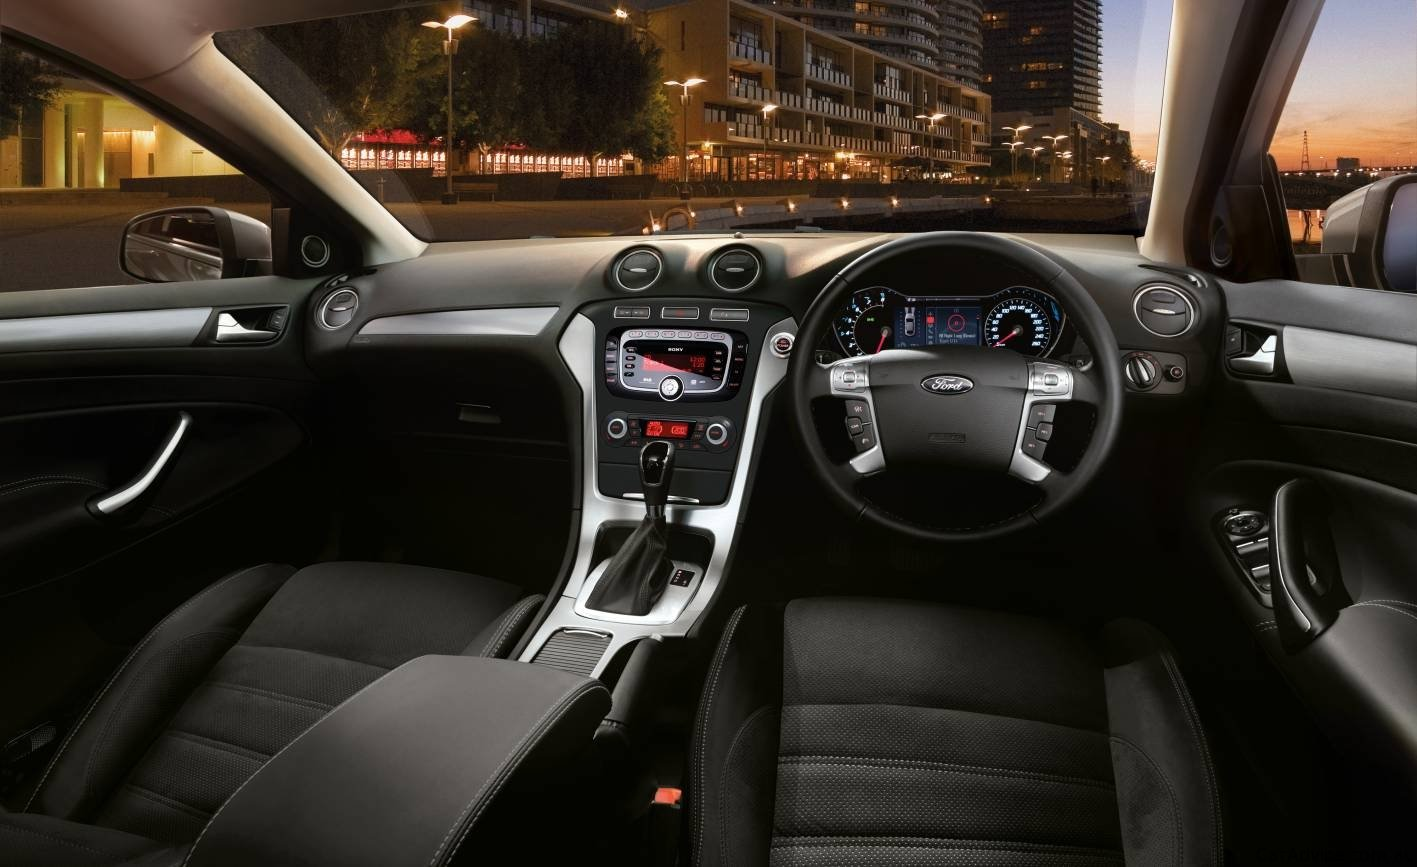 2011 ford mondeo ecoboost prices revealed photos 1 of 4. Black Bedroom Furniture Sets. Home Design Ideas